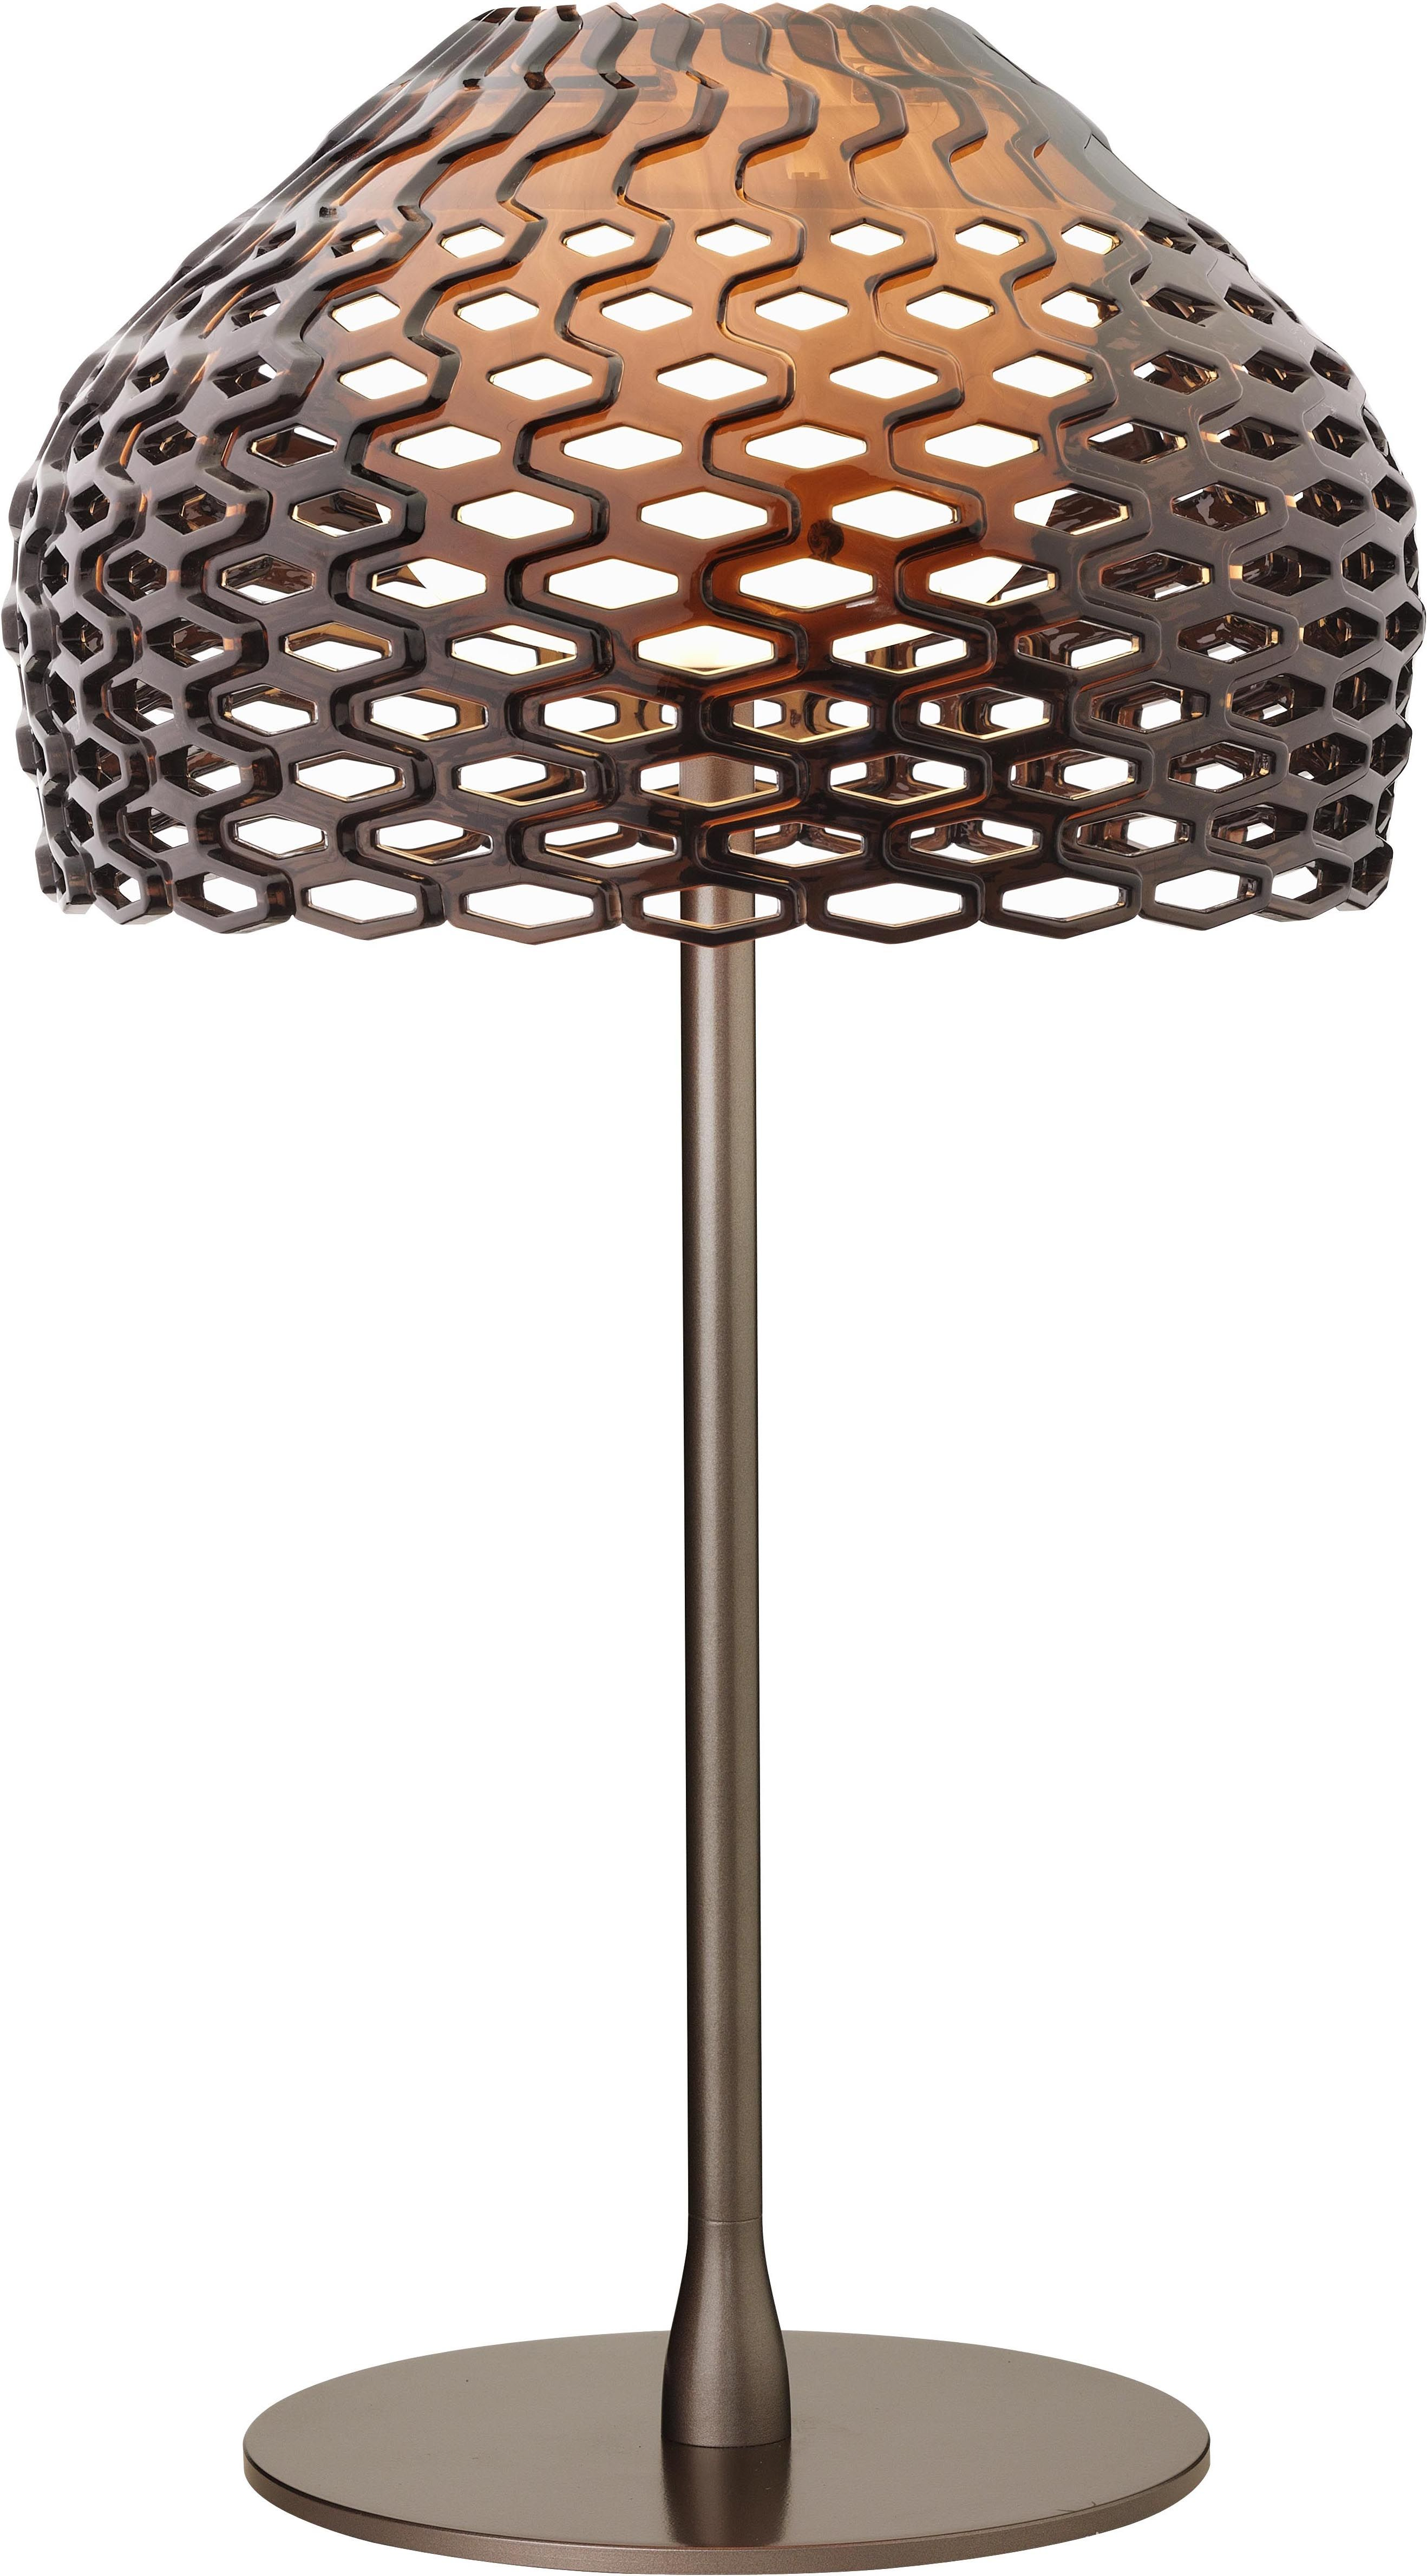 Tatou table lamp h 50 cm gray ocher by flos for Table lamps under 50